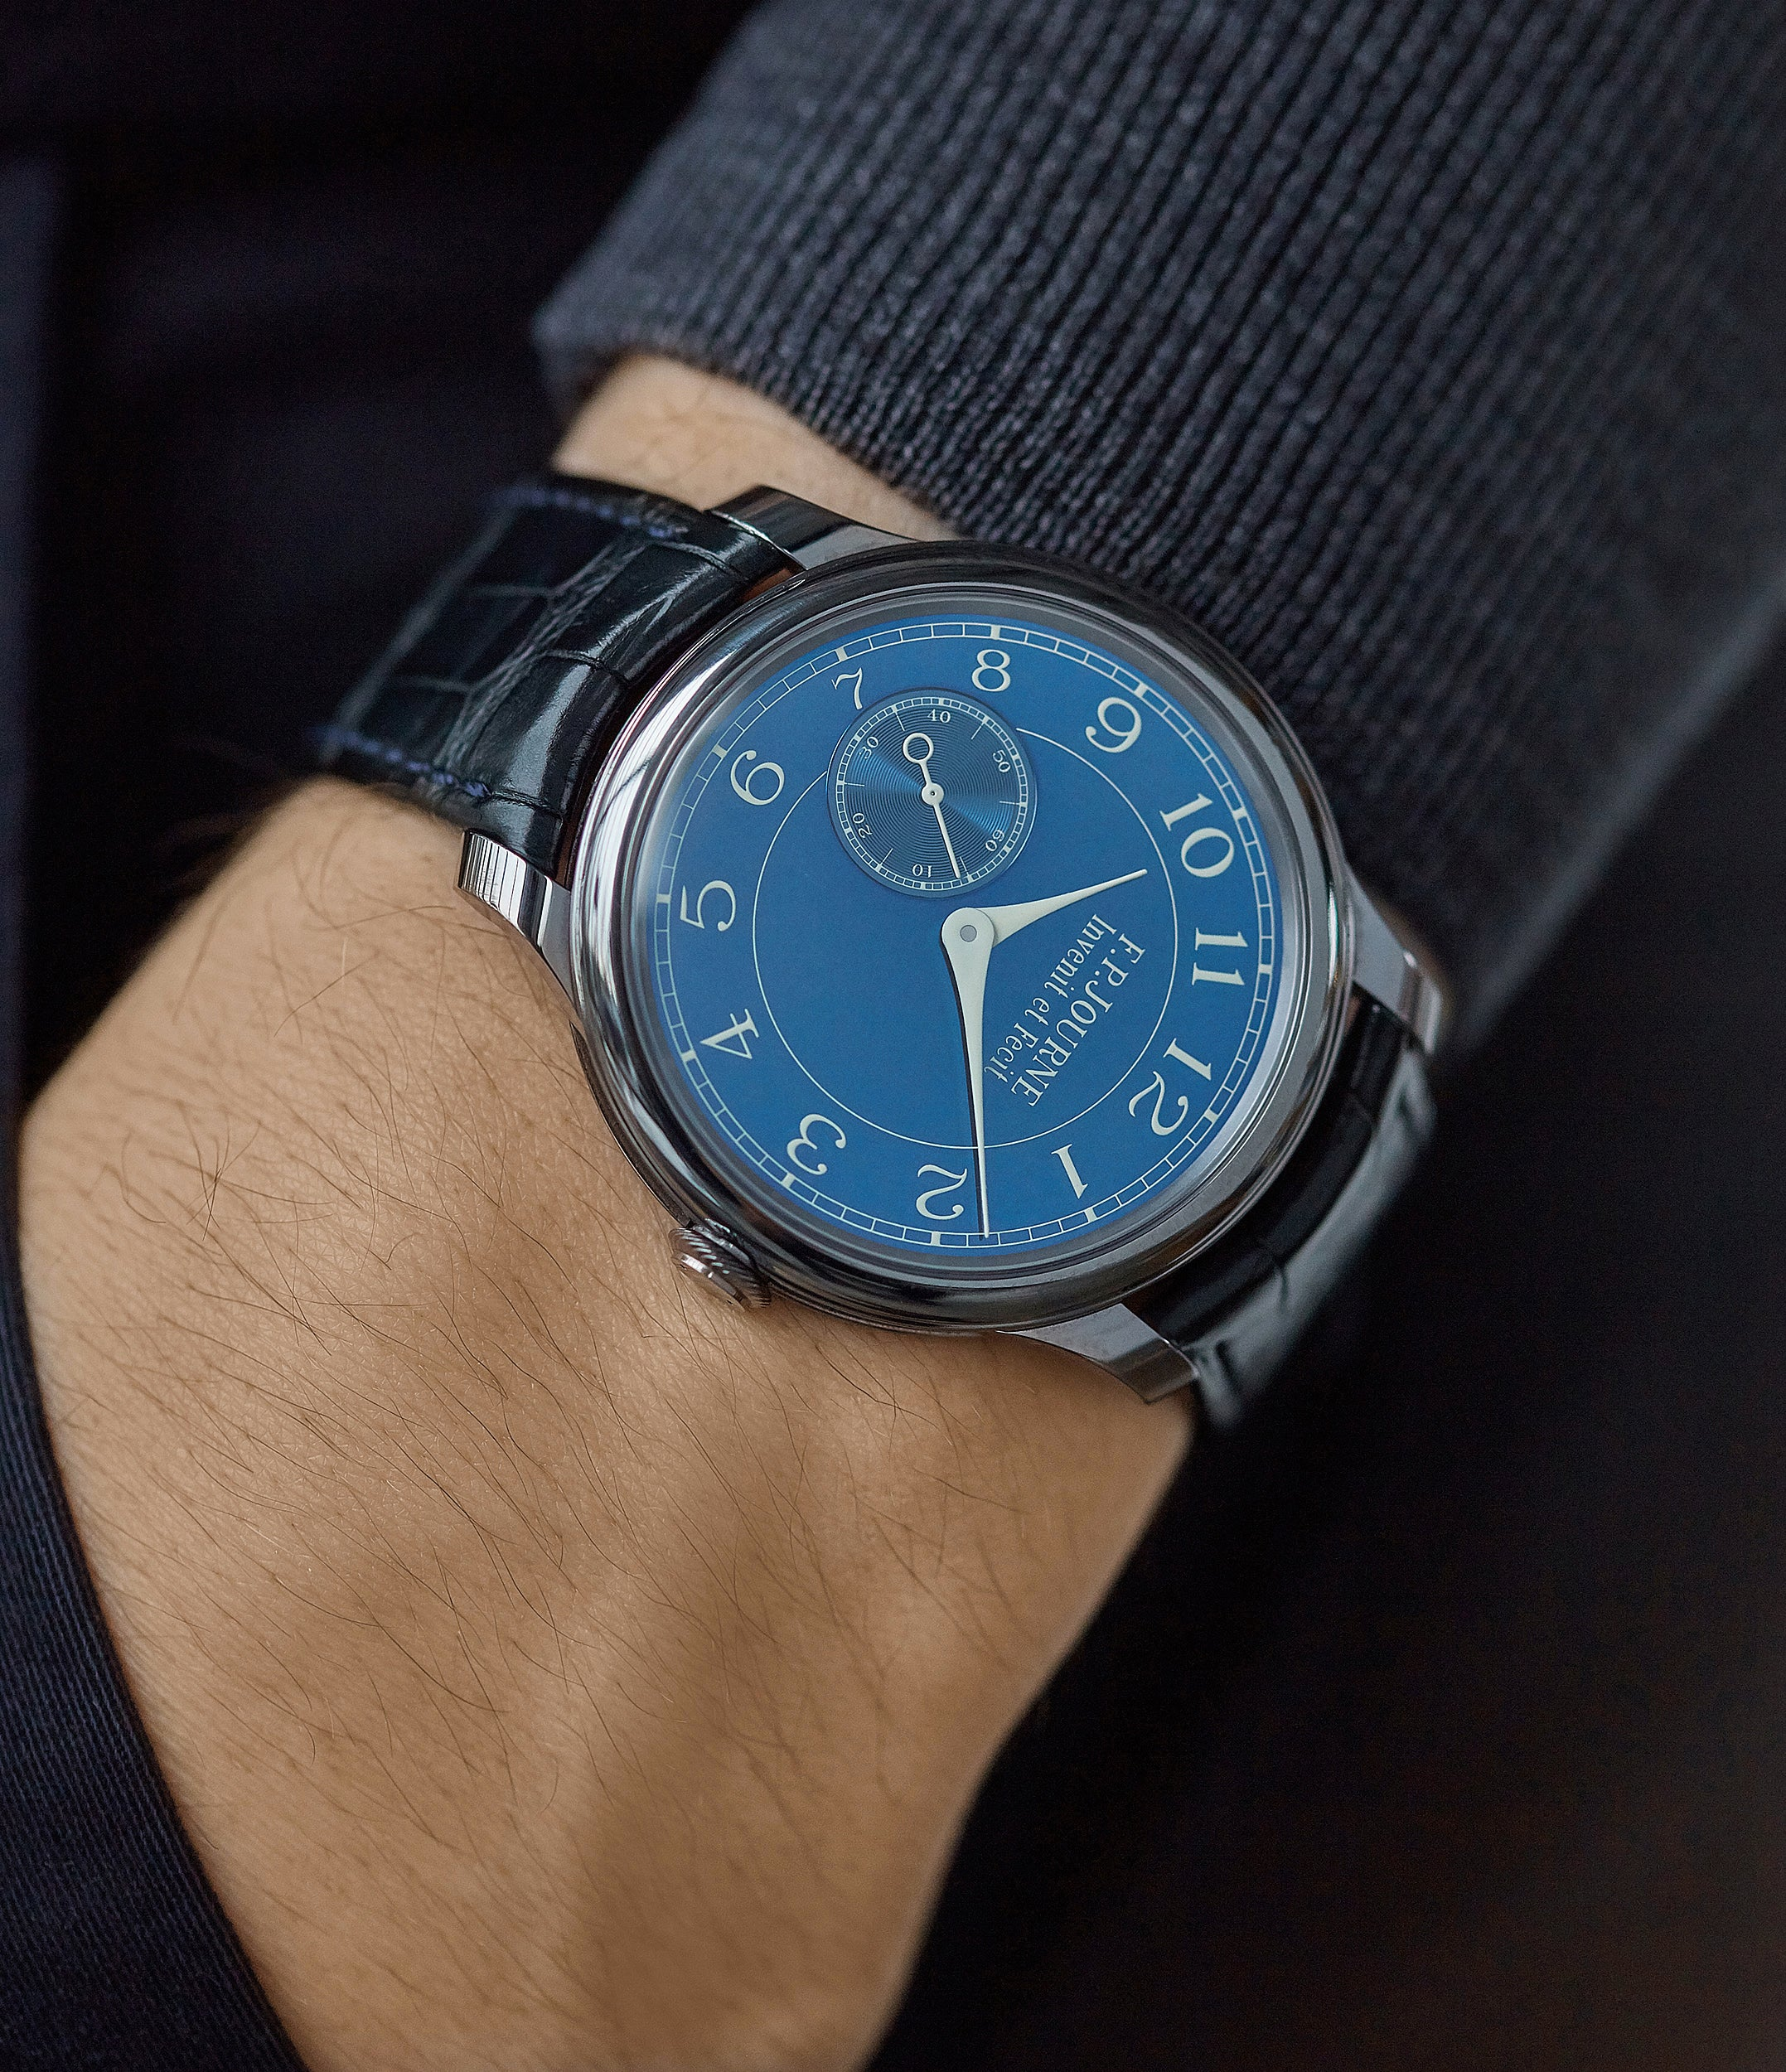 luxury pre-owned watch F. P. Journe Chronometre Bleu tantalum blue dial rare dress watch for sale online at A Collected Man London approved reseller of independent watchmakers